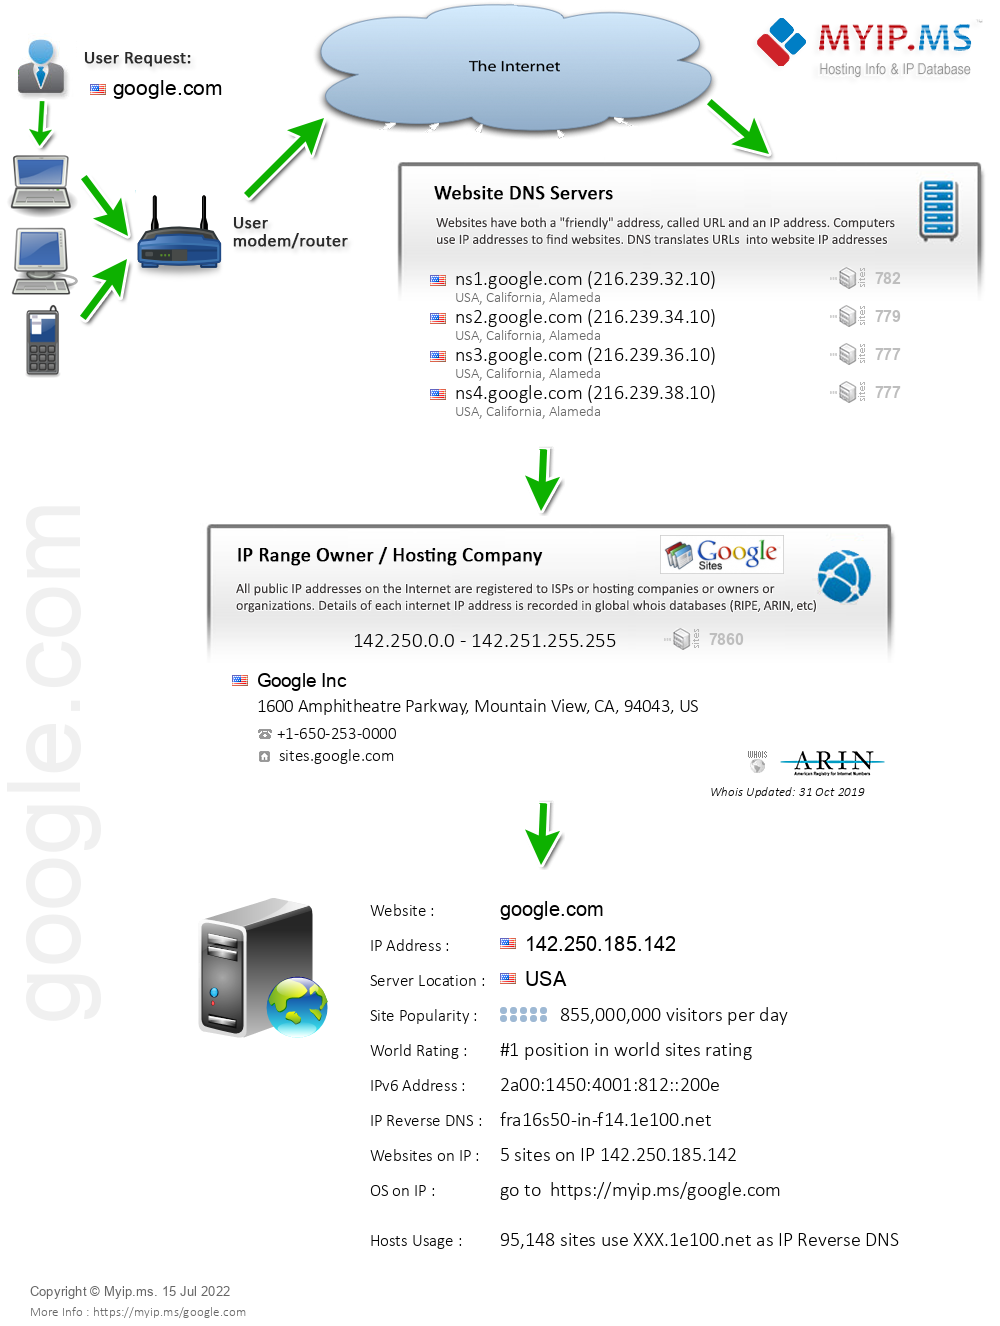 Google.com - Website Hosting Visual IP Diagram